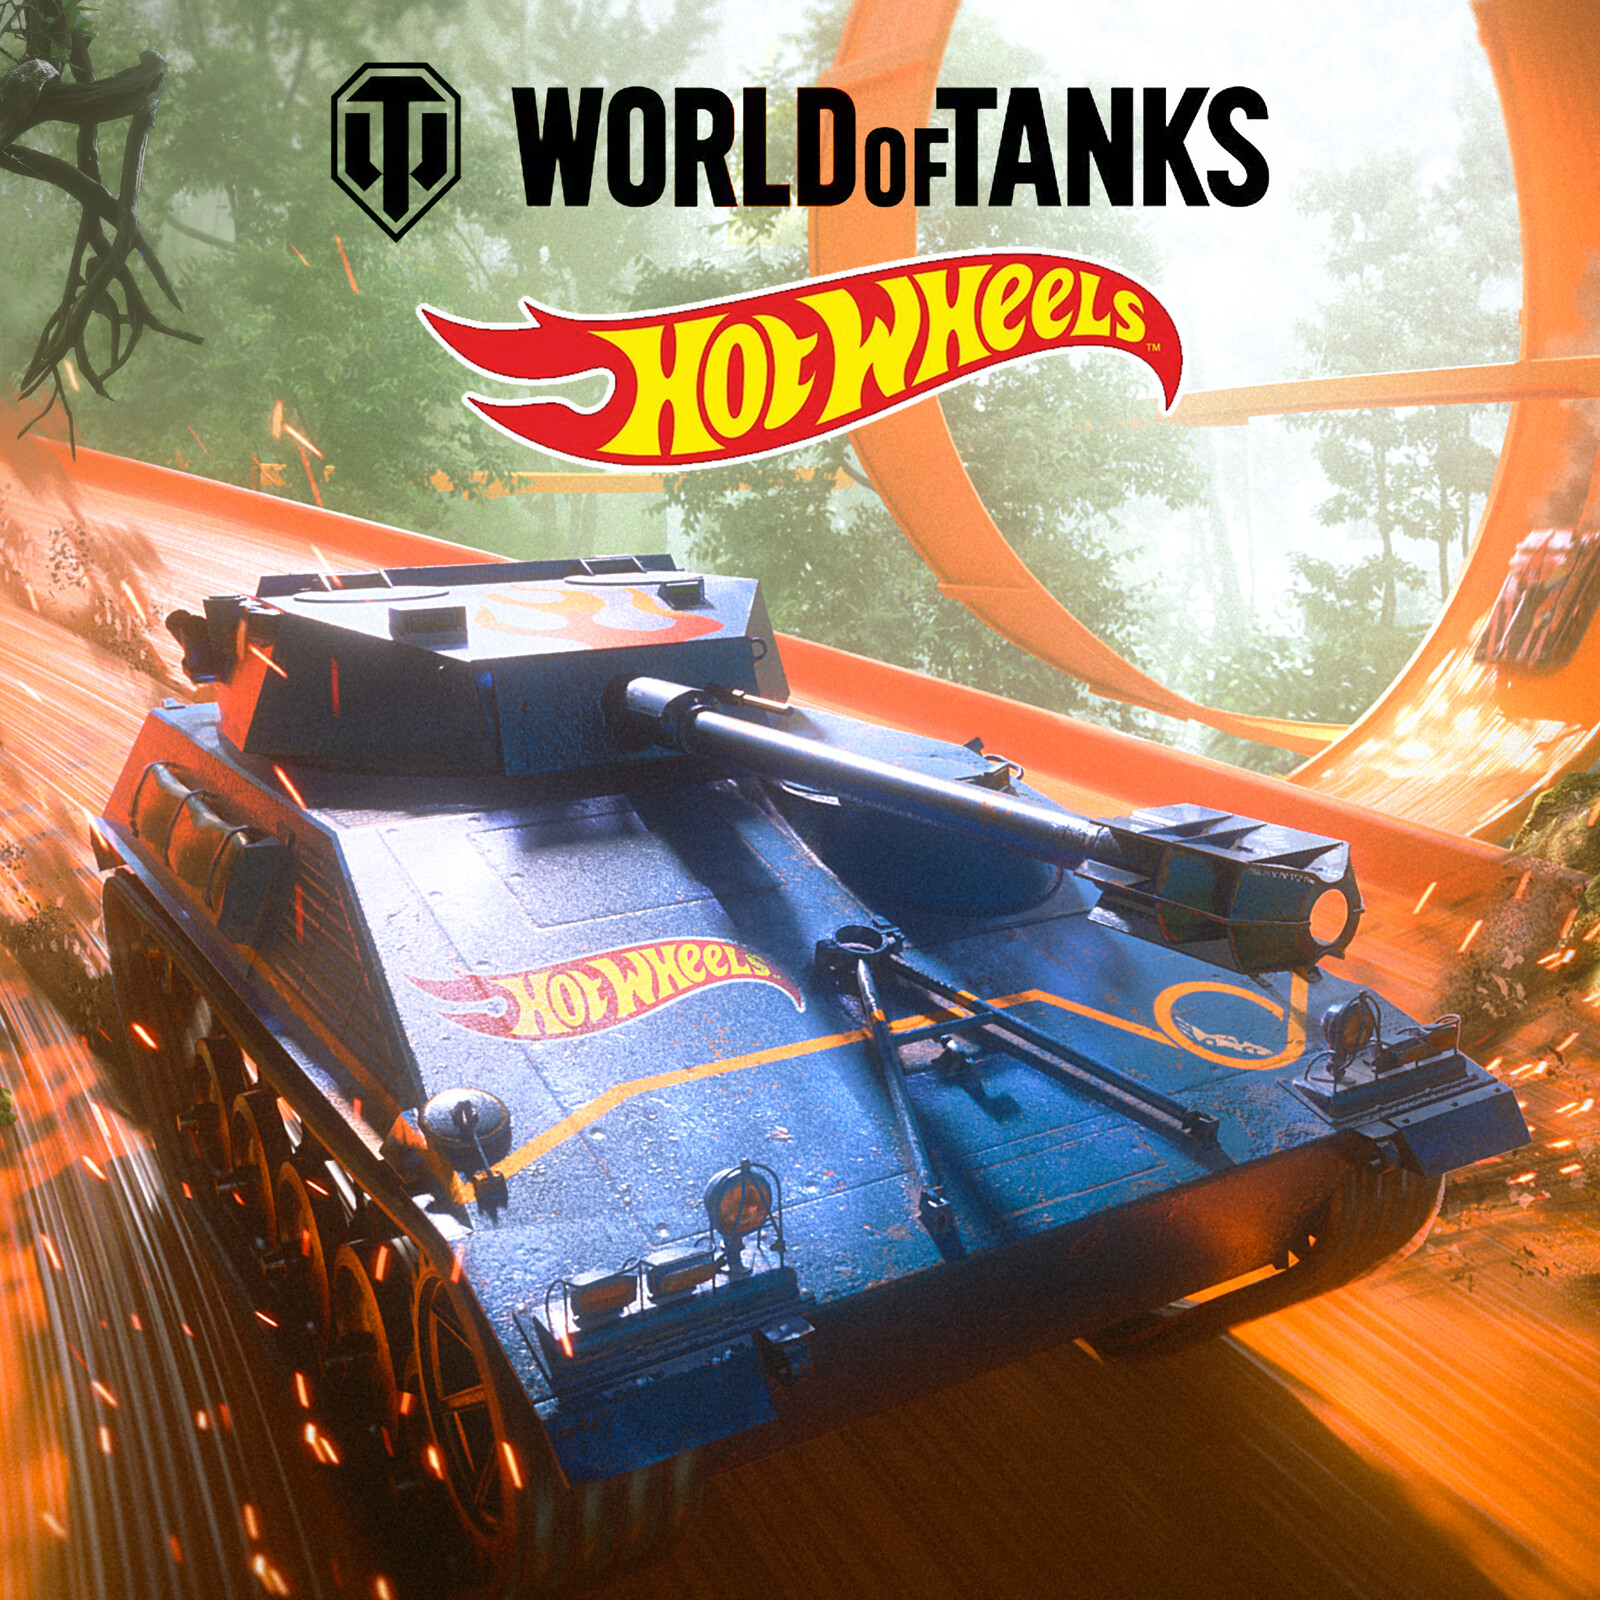 World of Tanks - Hot Wheels Promotional Art